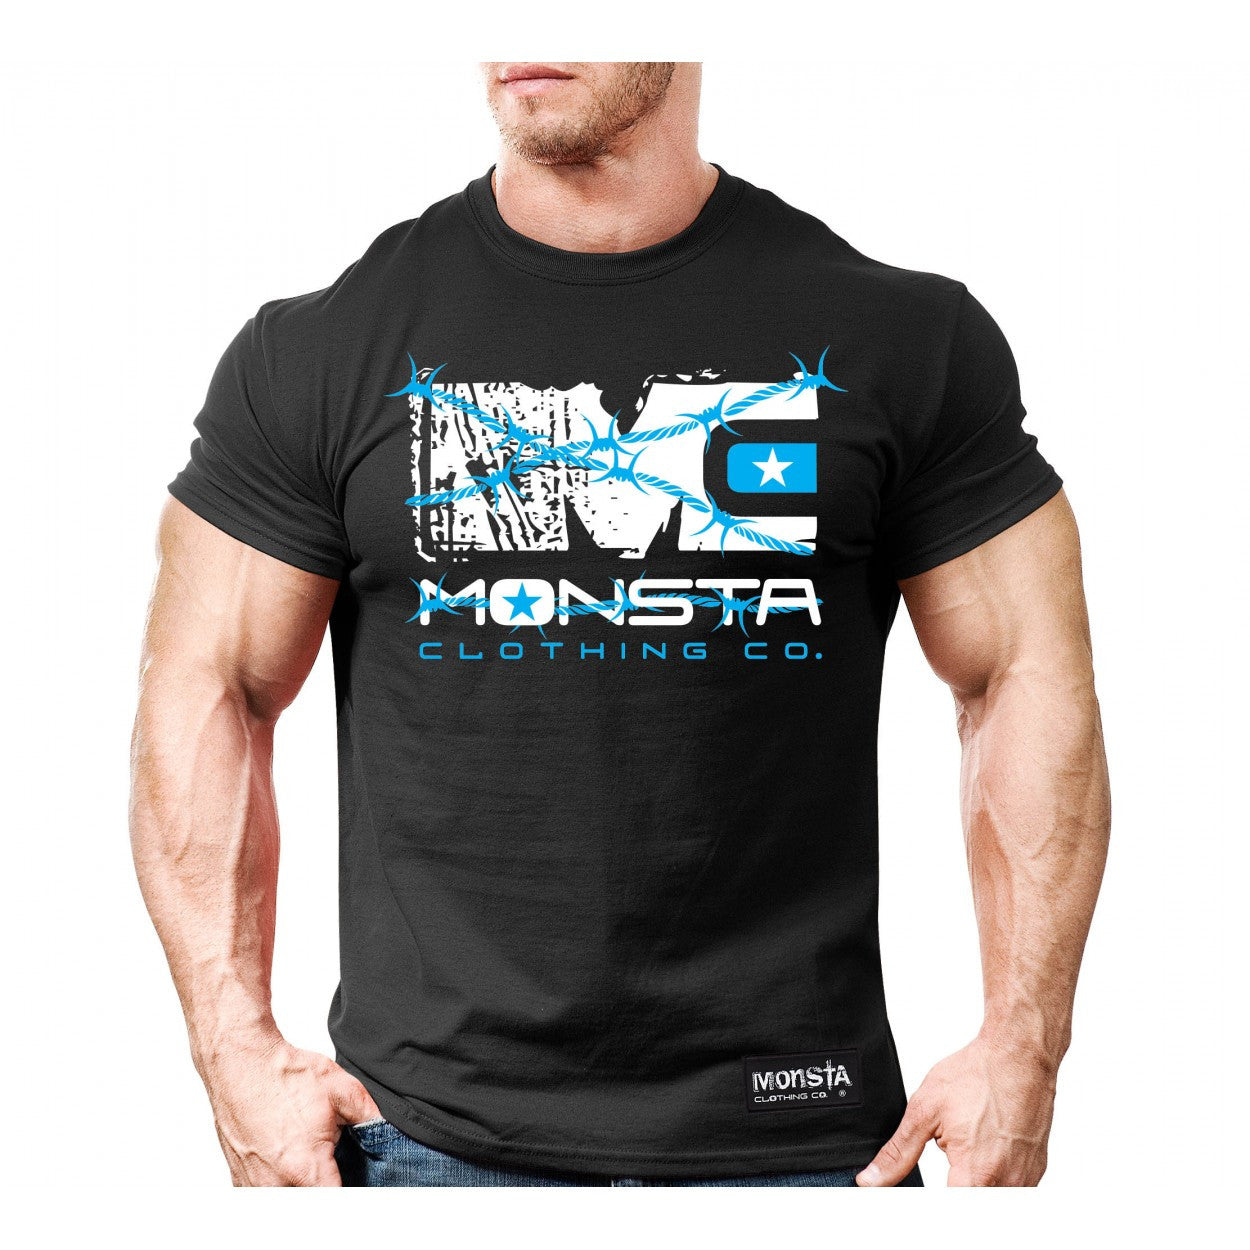 Tee: Determination - Monsta Clothing Australia